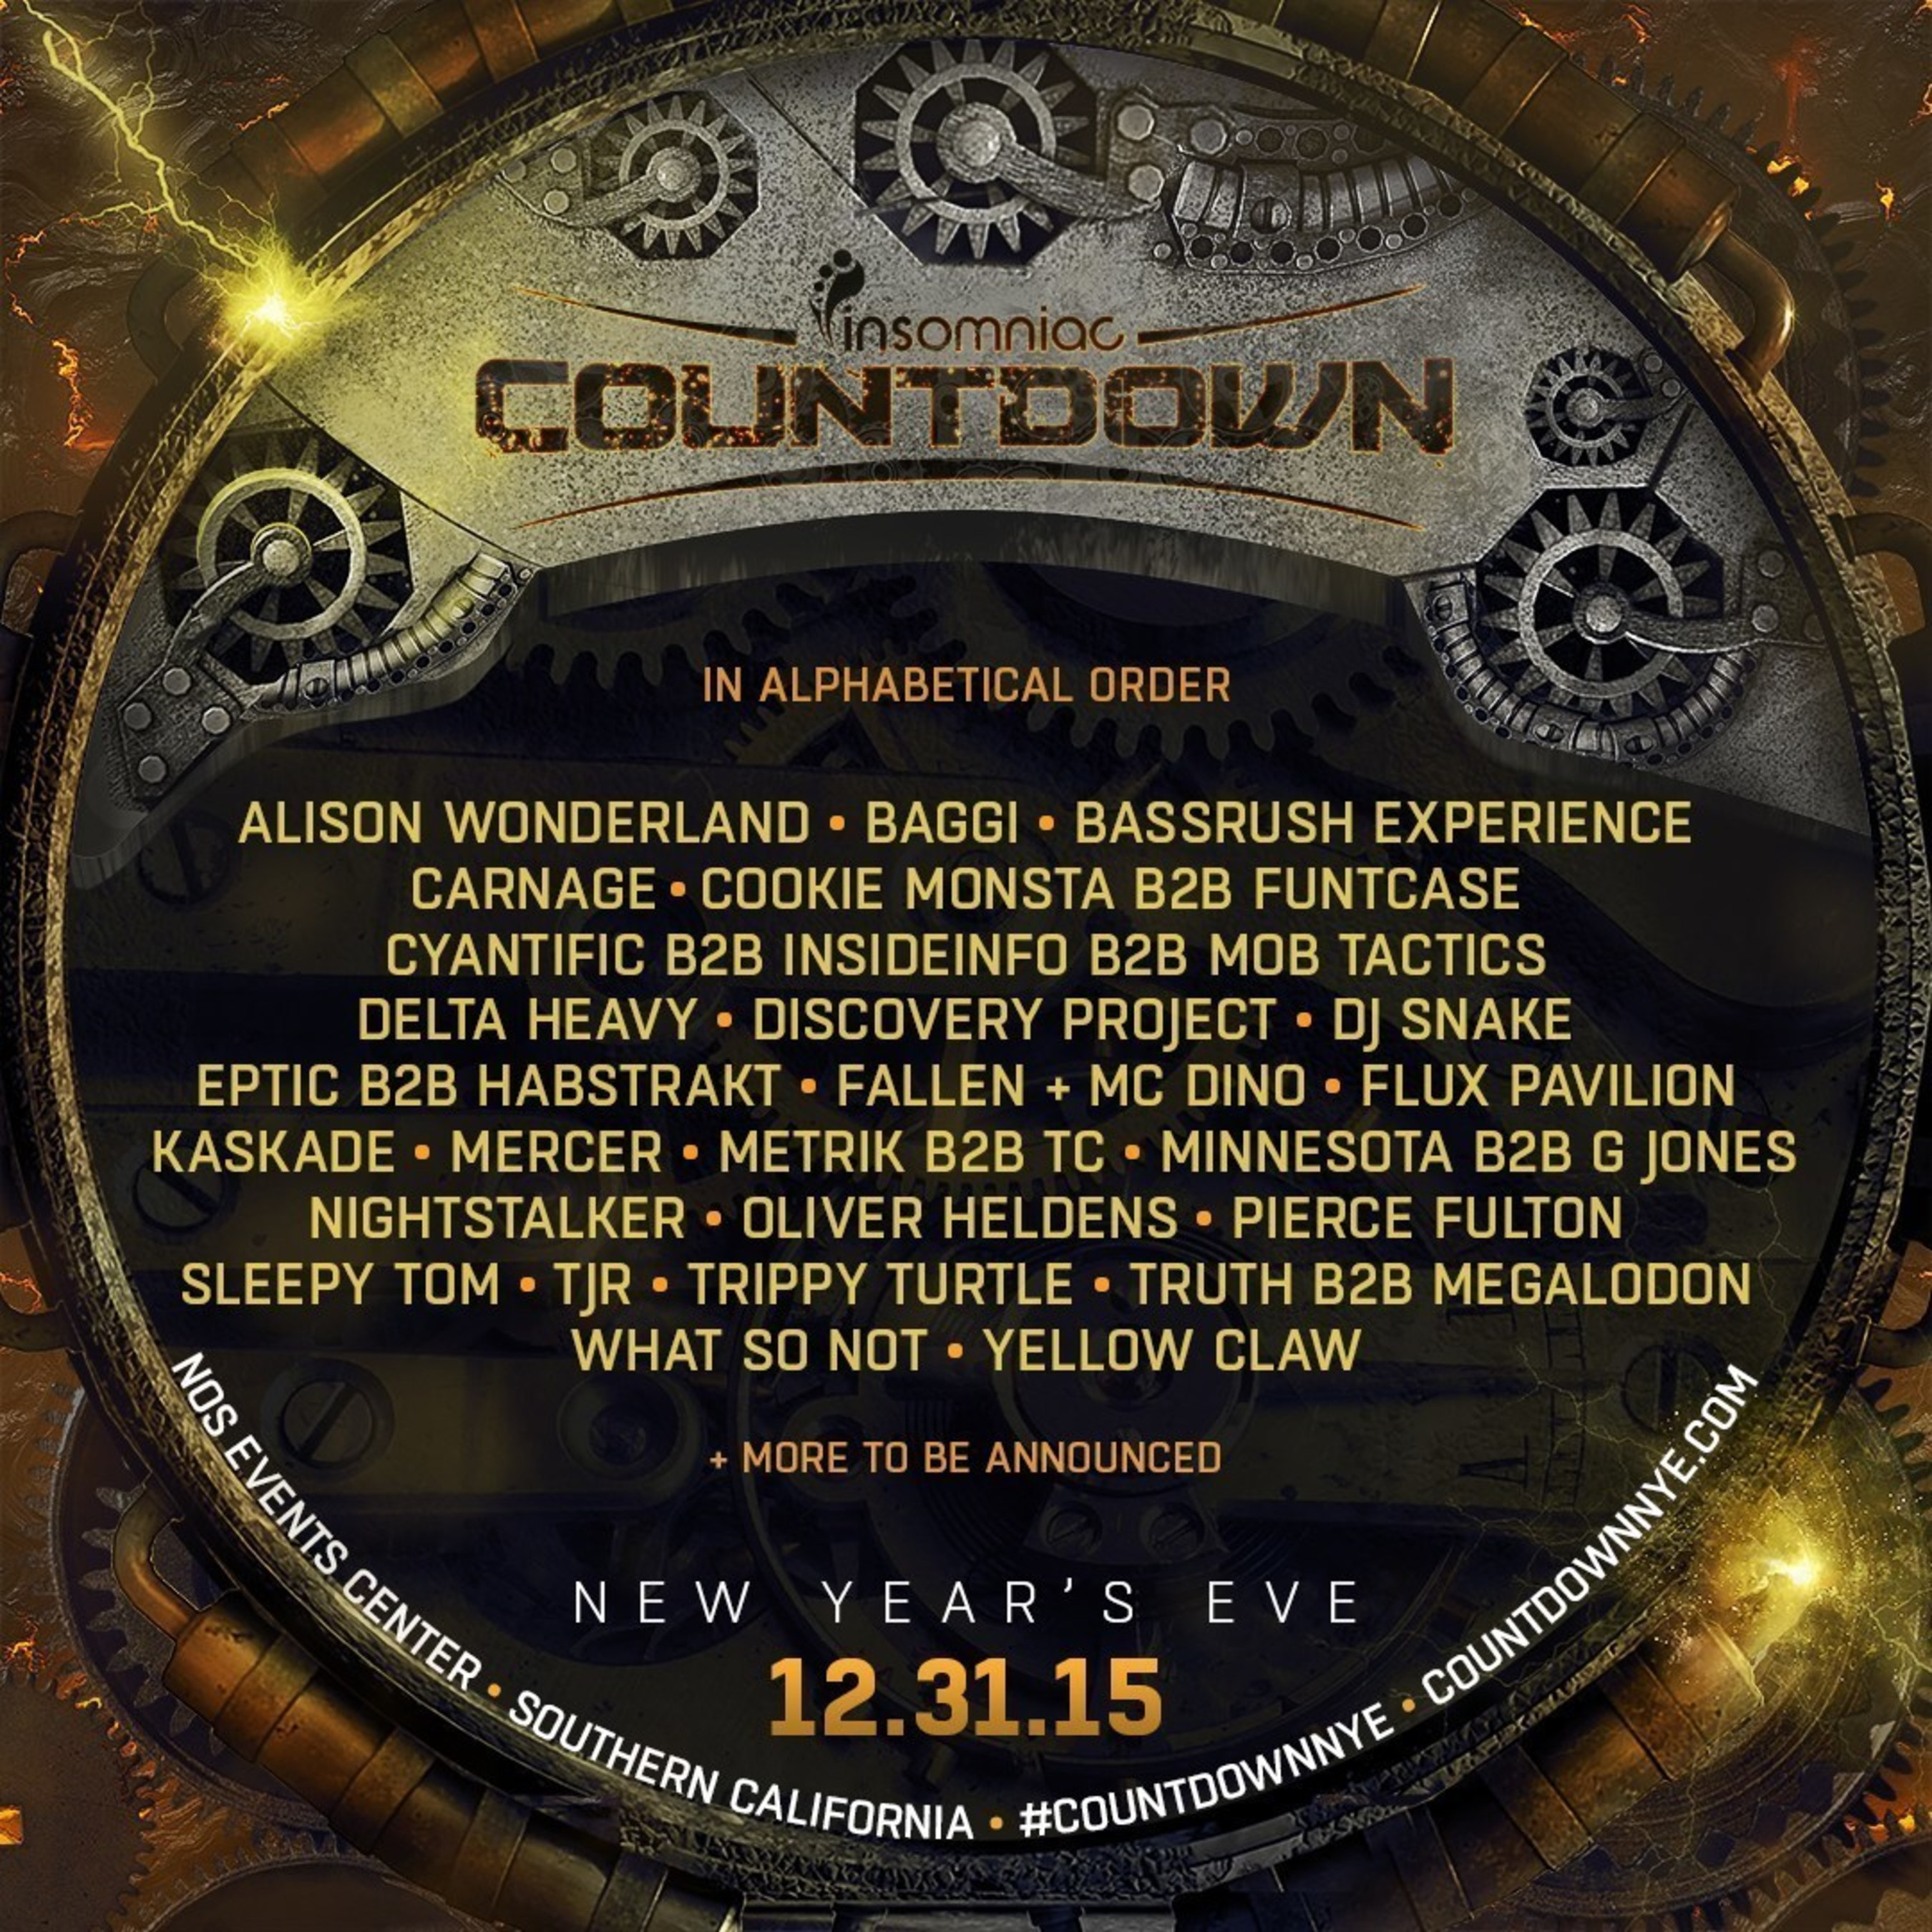 Insomniac Reveals Massive Multi-Genre Lineup For 2016 Countdown New Year's Eve Celebration